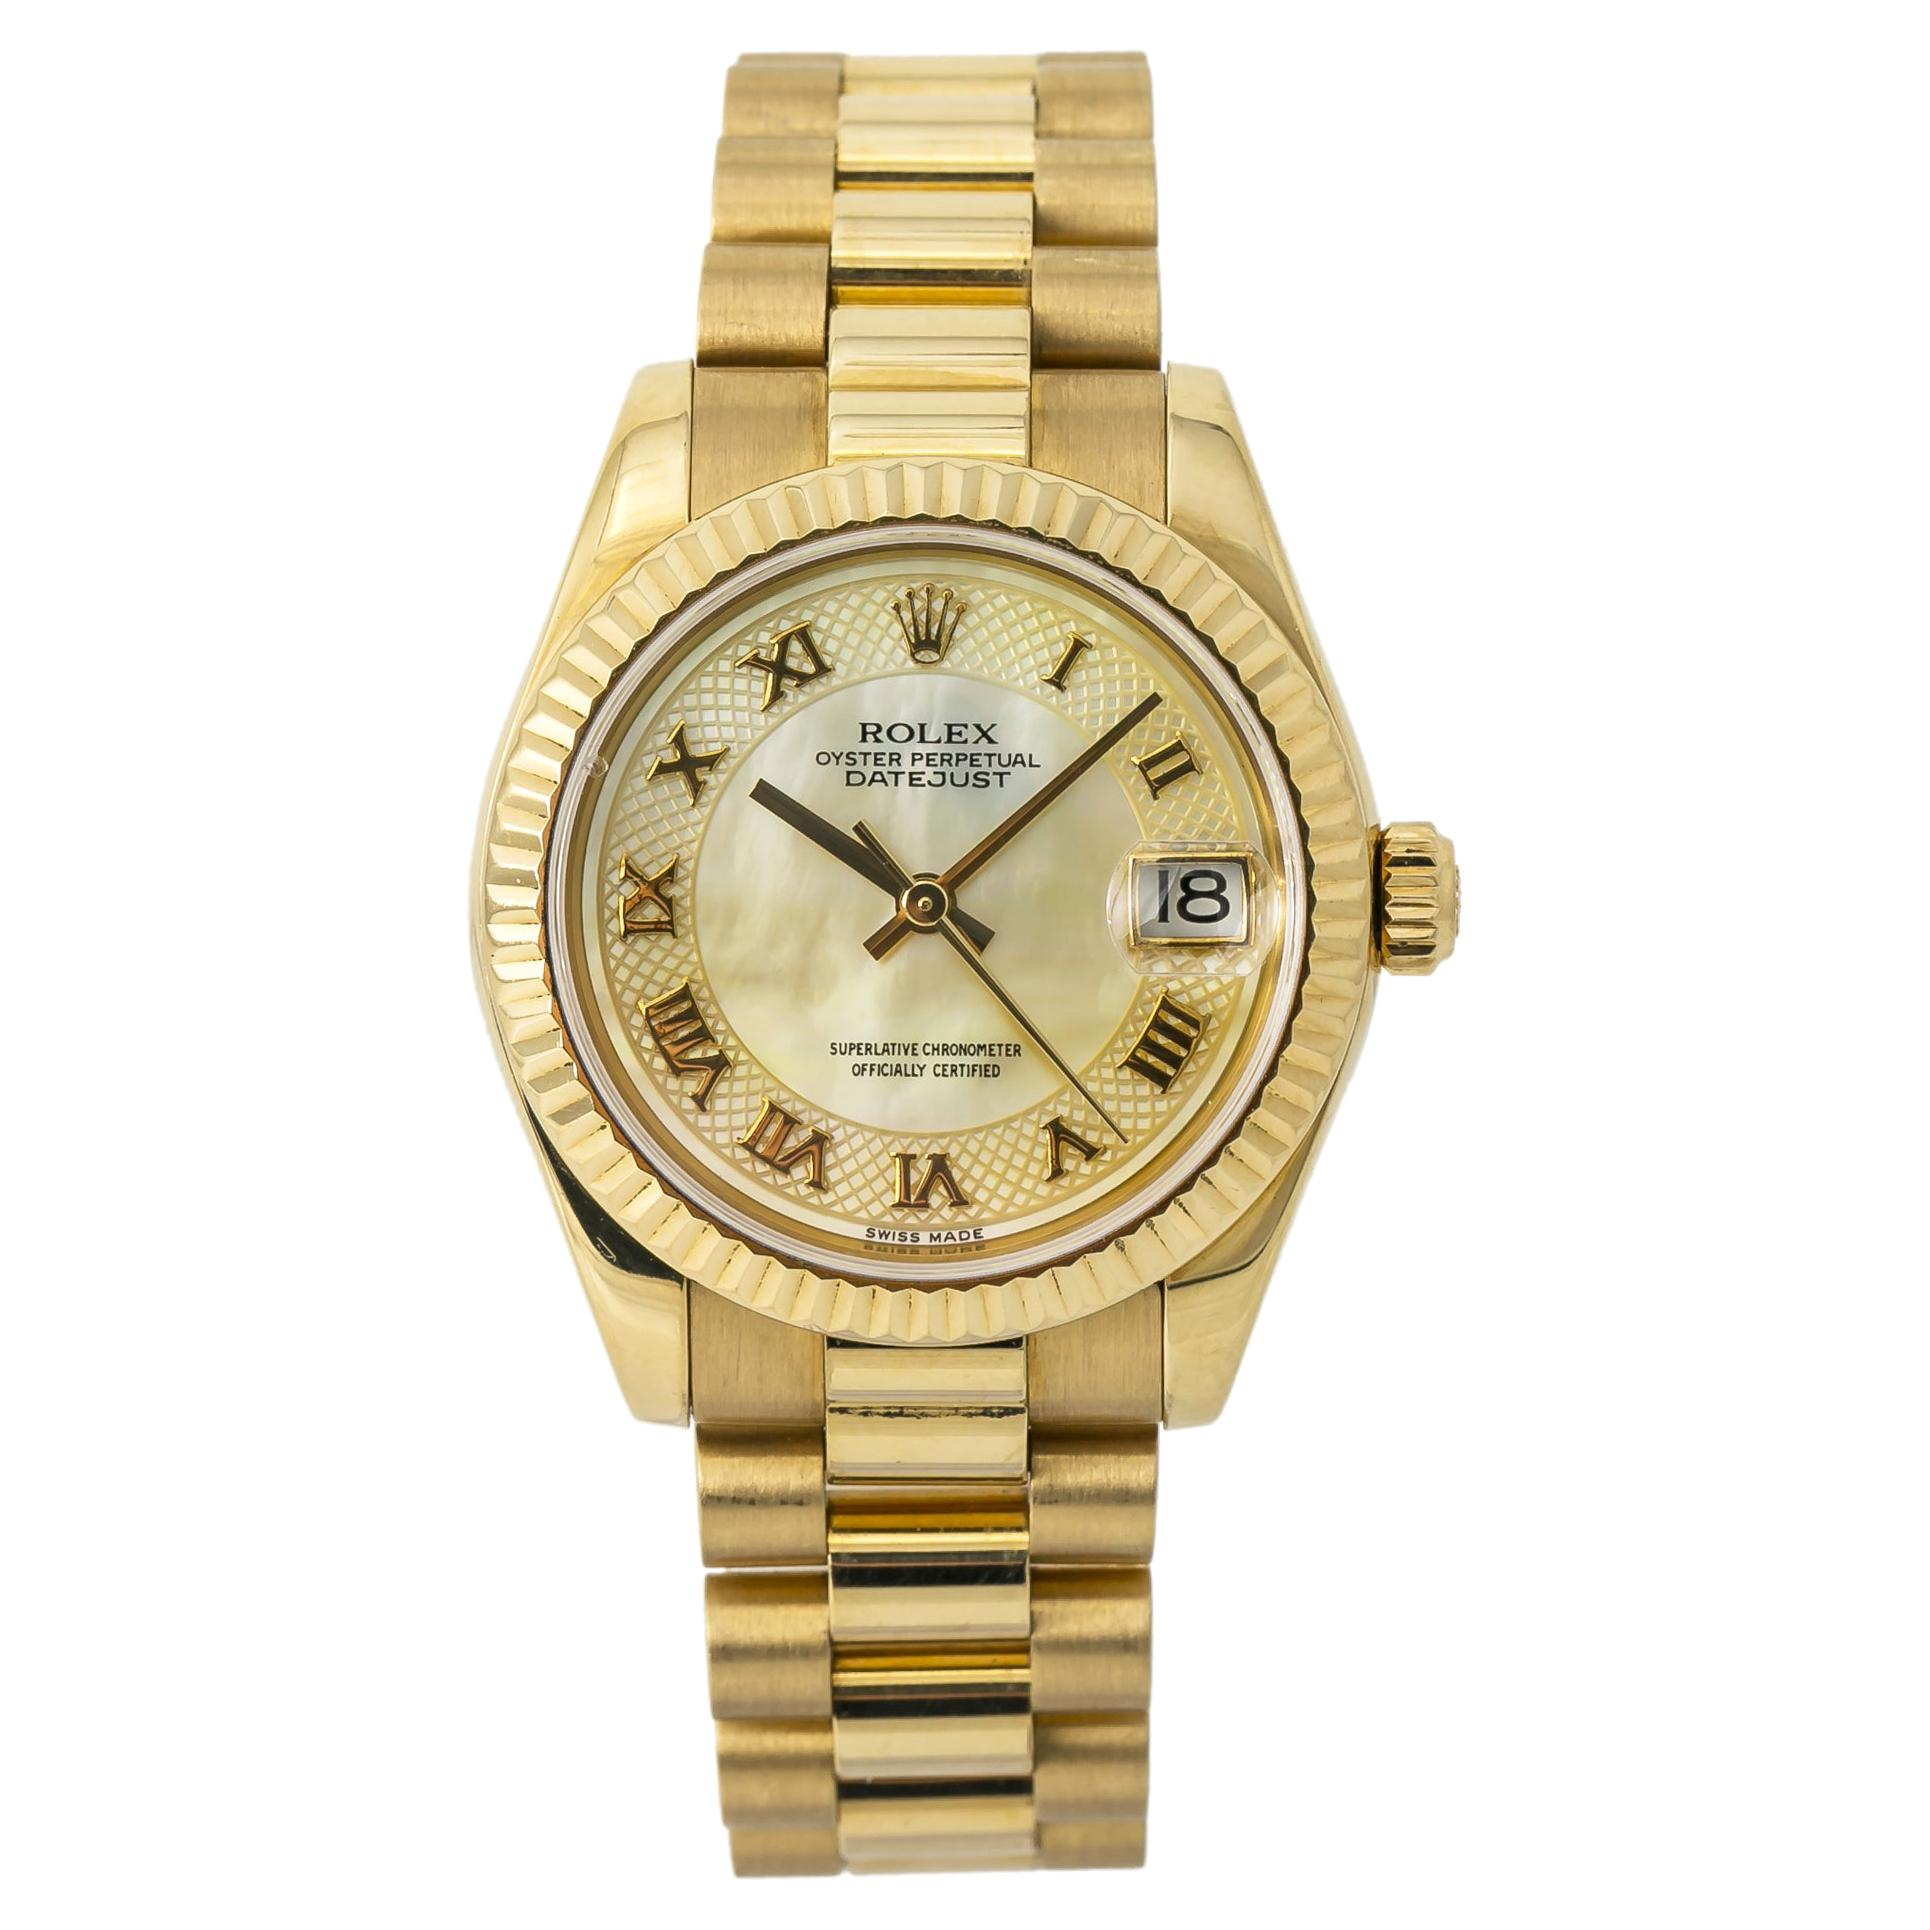 Rolex Datejust President 178278 Automatic Watch 18K Gold MOP Dial W/Papers